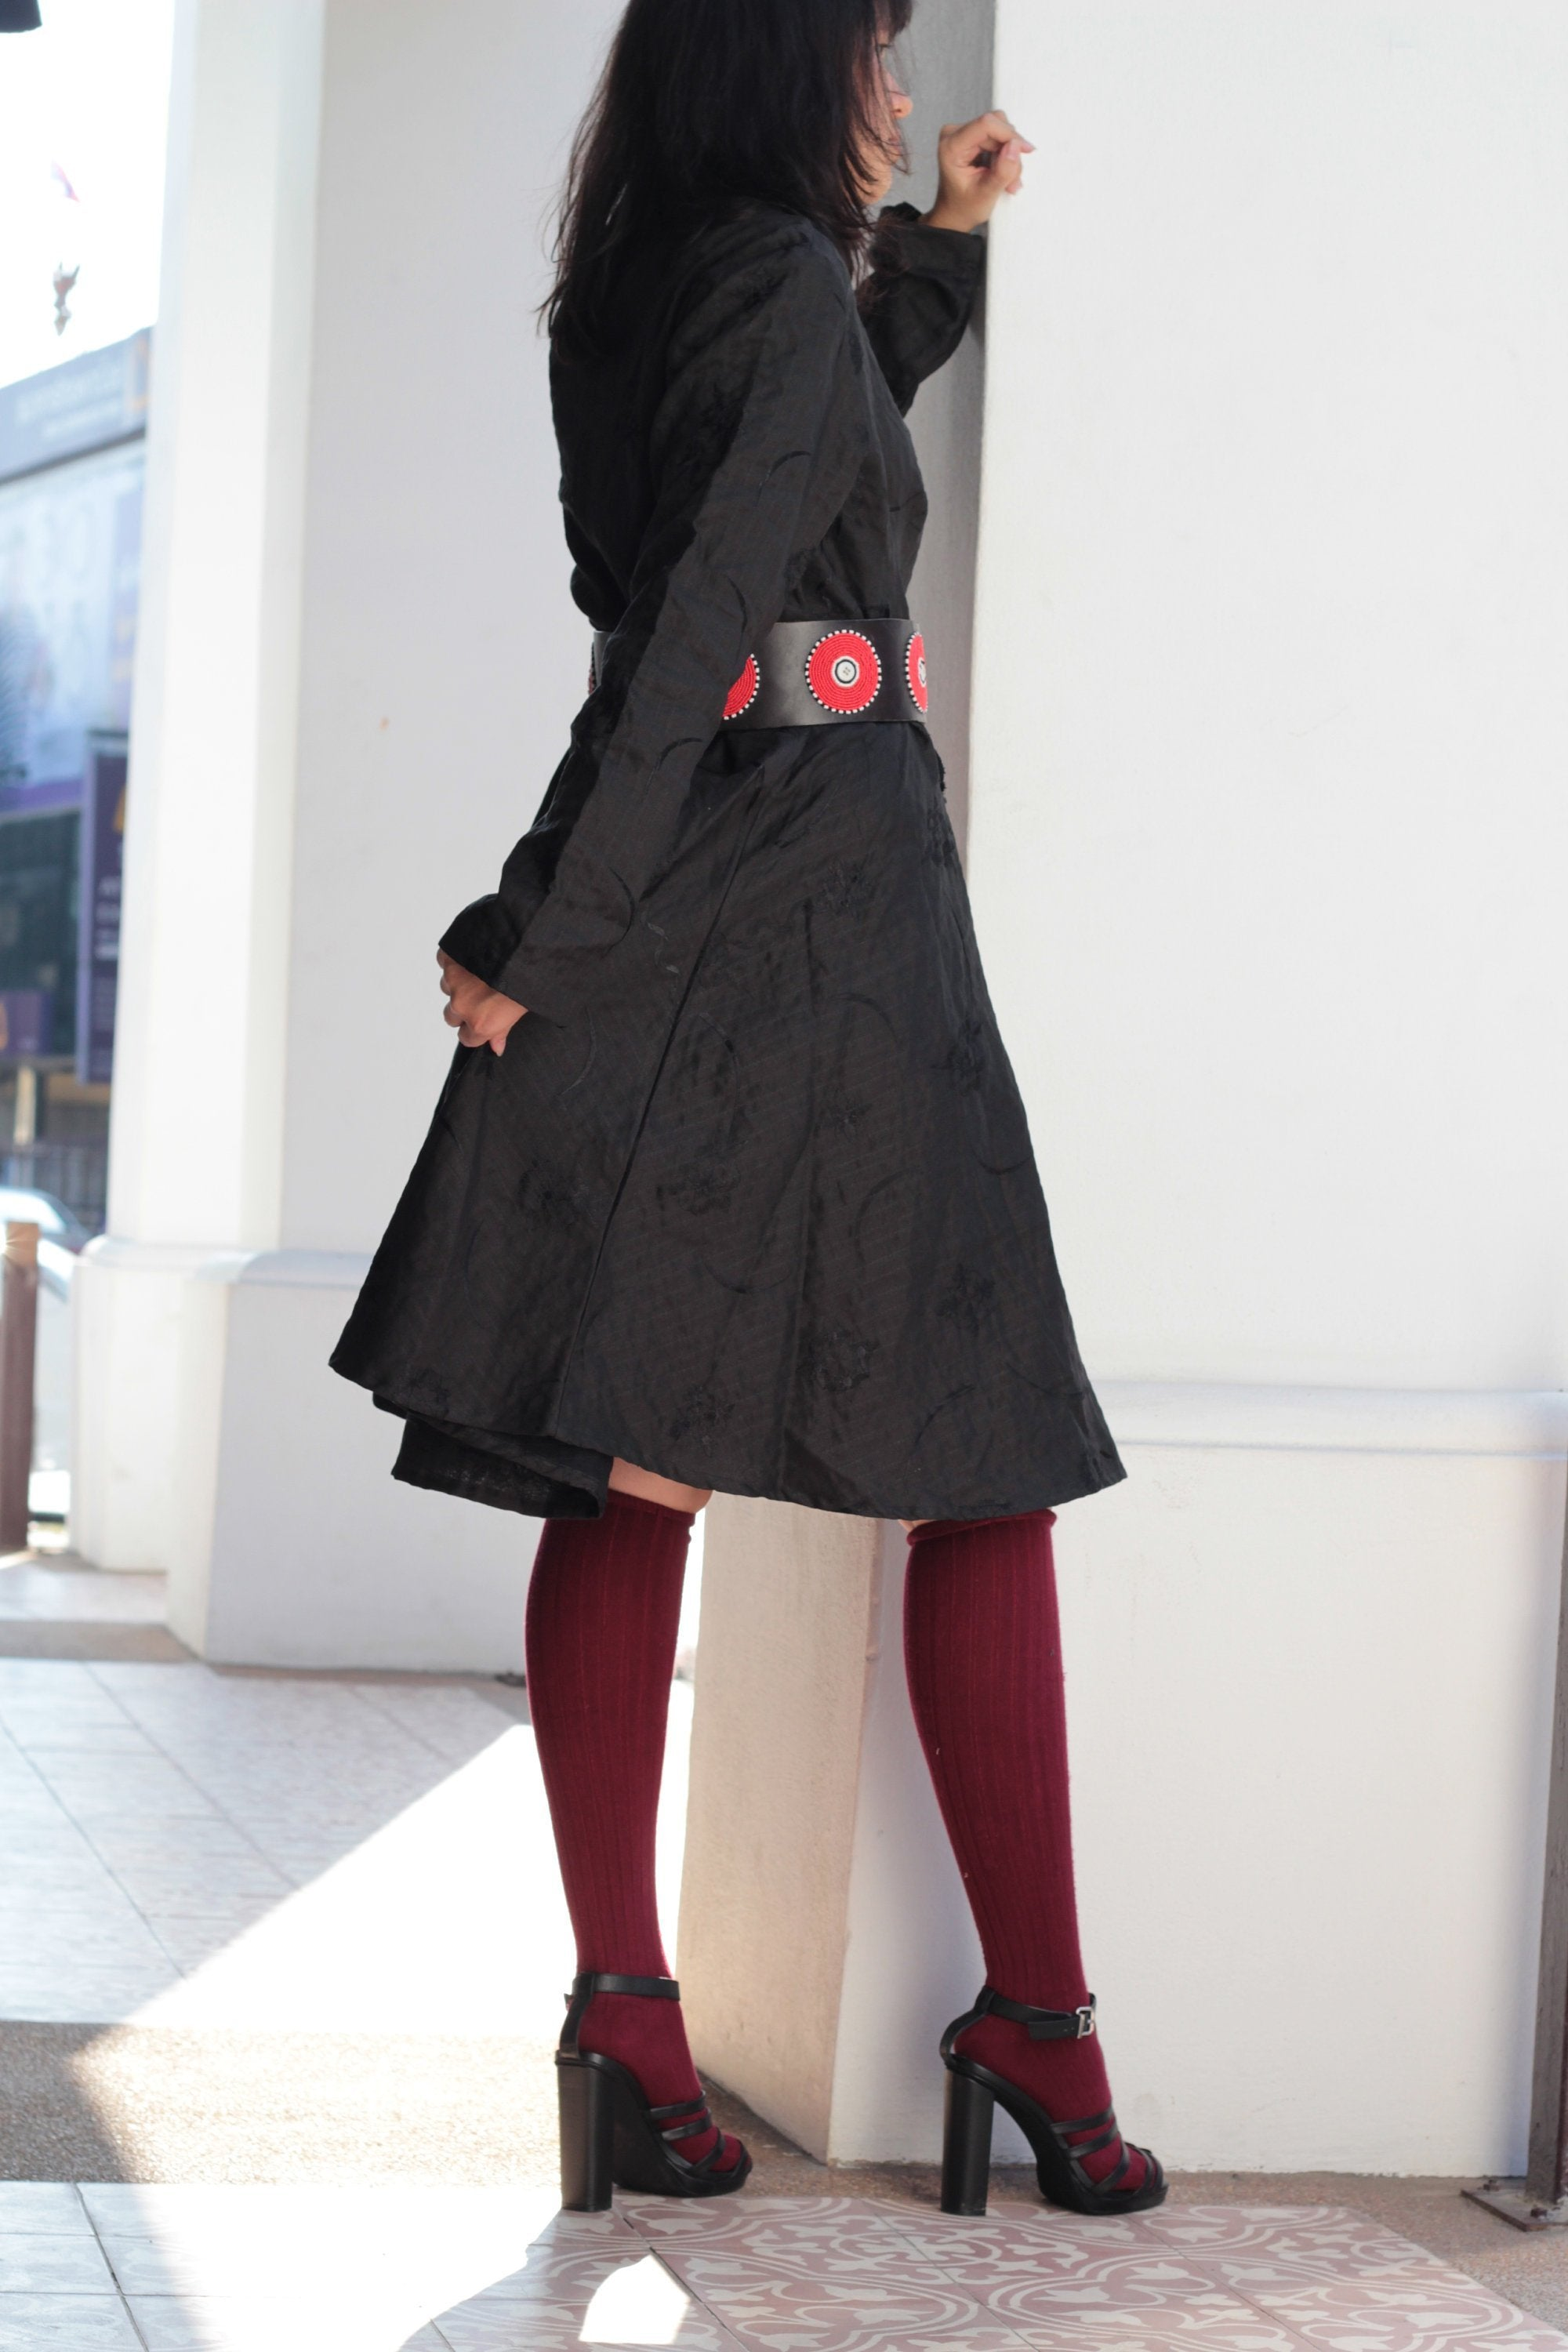 Dress for winter linen knee length two  Layers hand stitches dress for autumn & winter size M